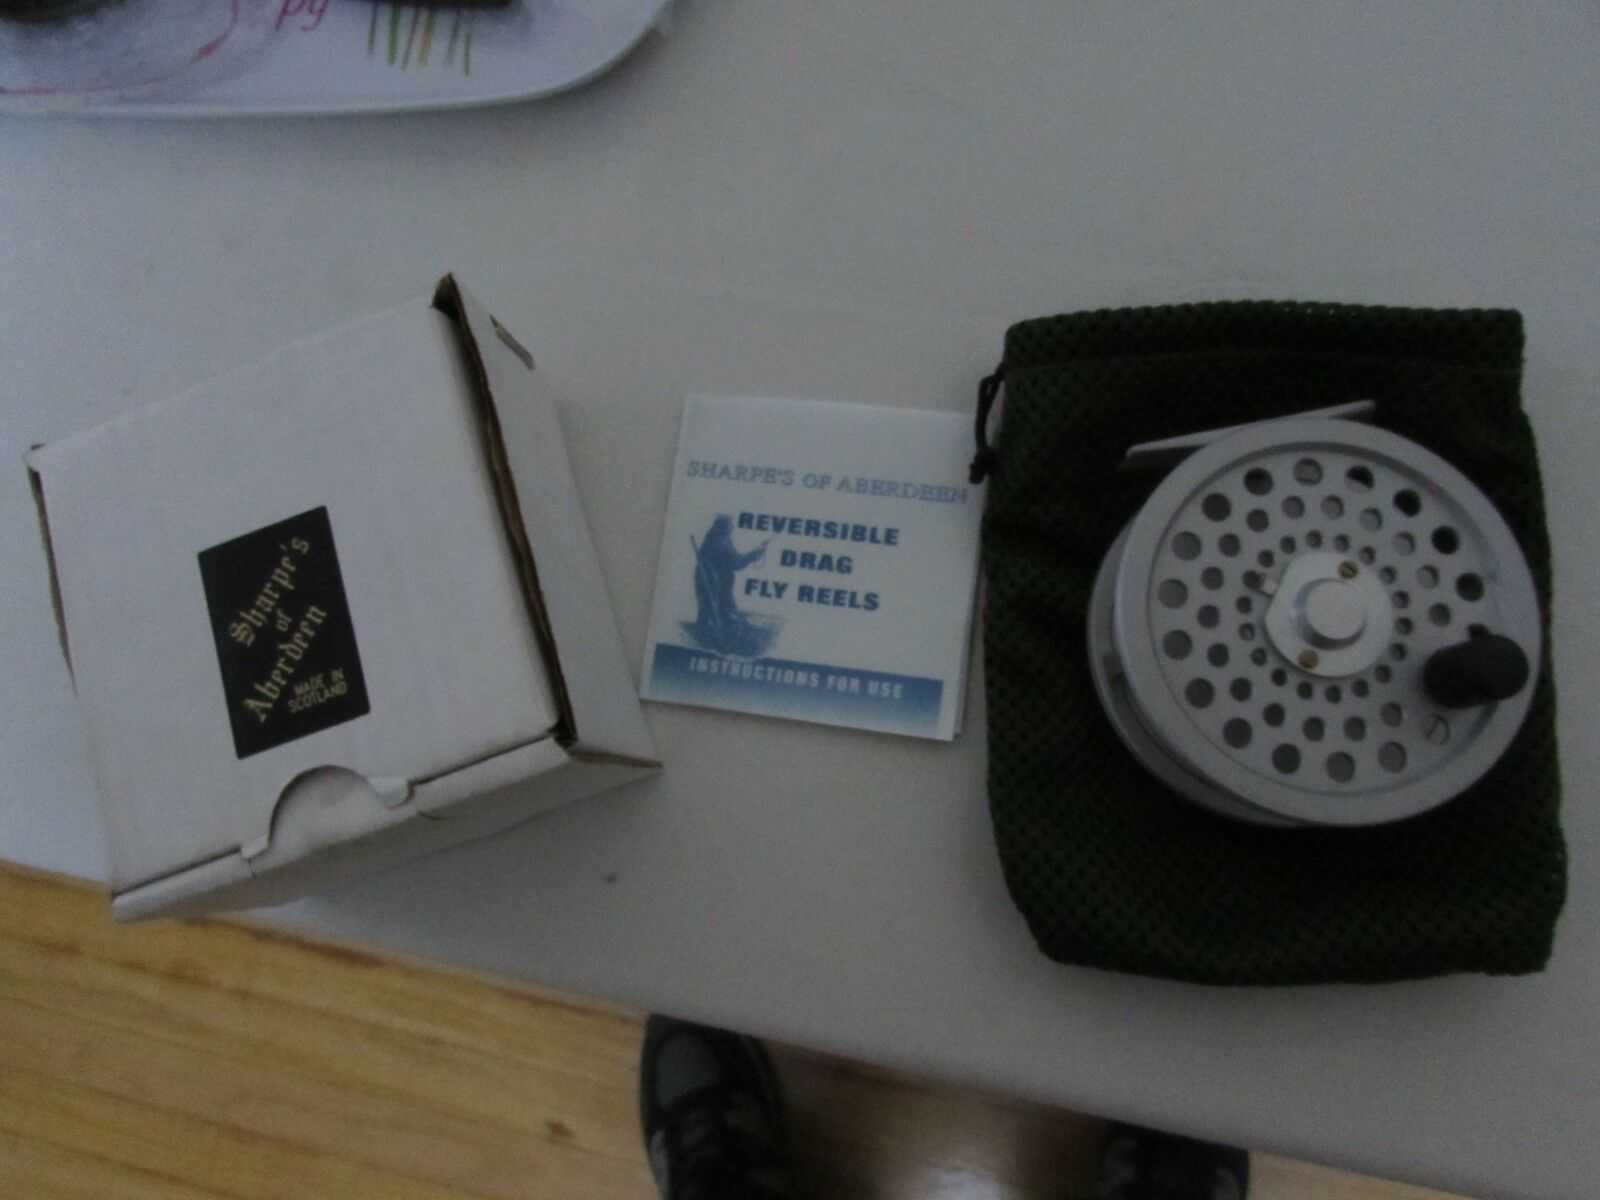 Stunning unused sharpes  aberdeen menteith trout fly fishing reel 3 + 5 8ths   first time reply